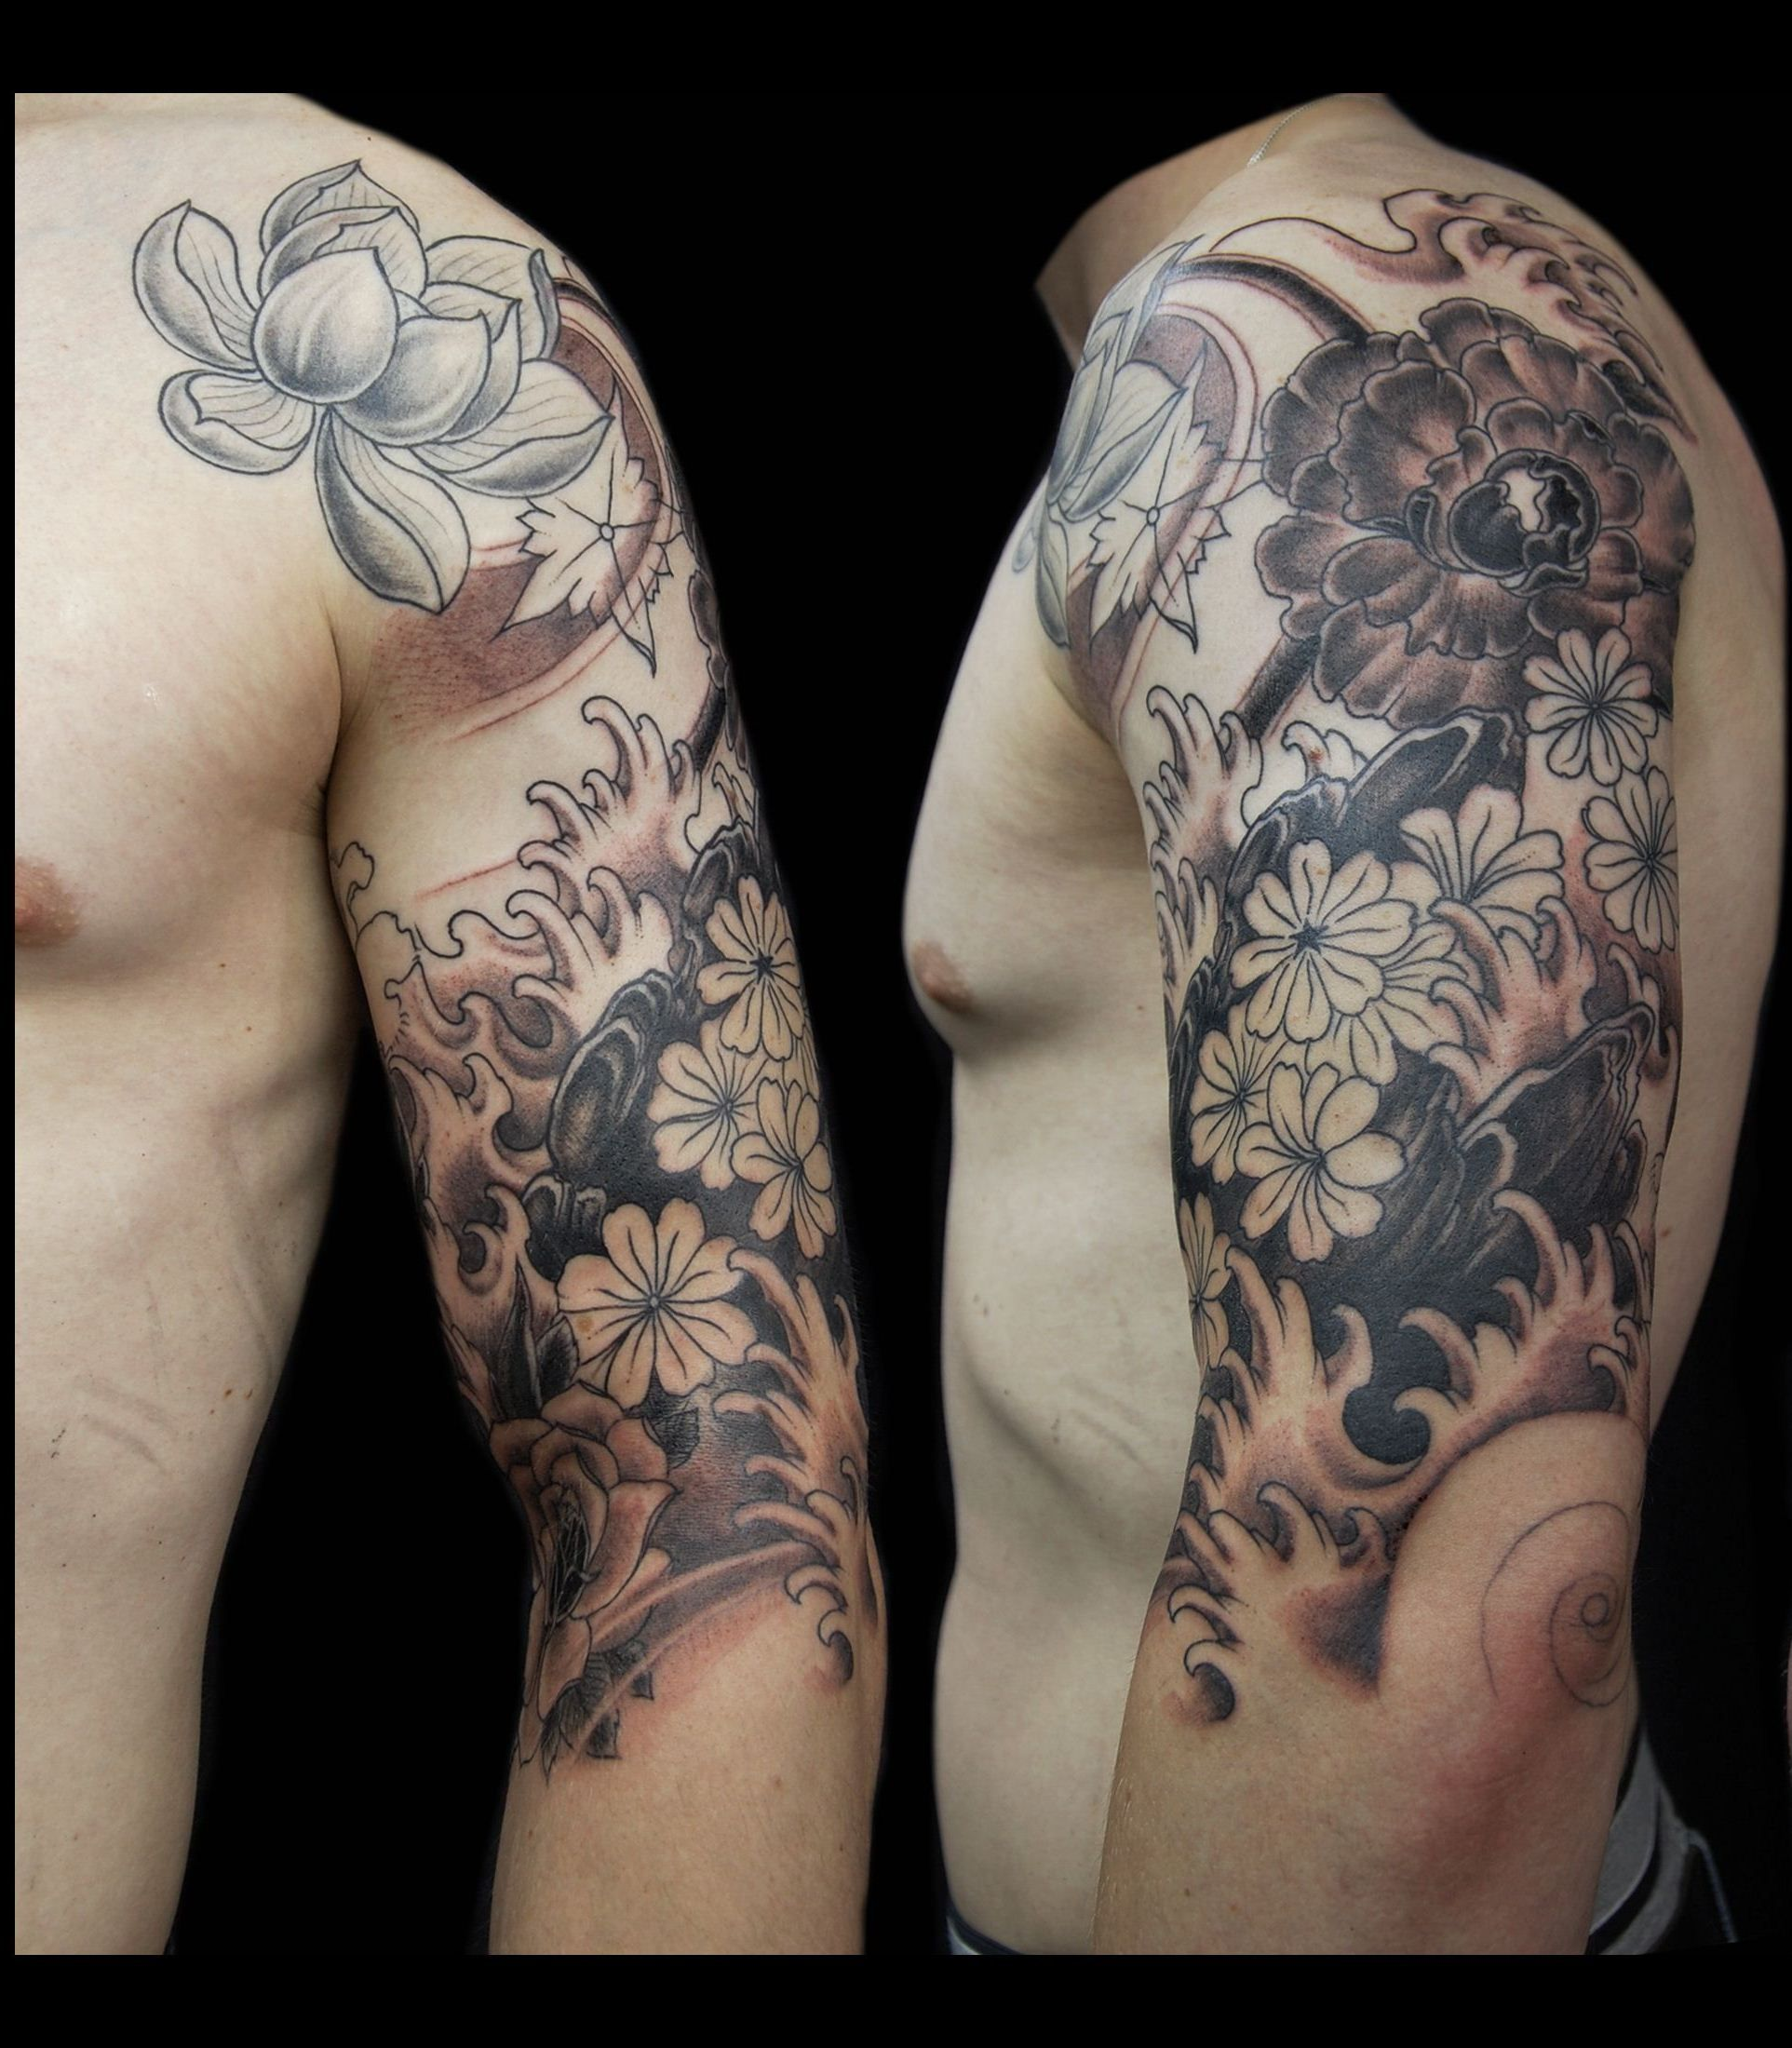 Flower Tattoos For Men Get Inked Up Pinterest Flower Tattoos